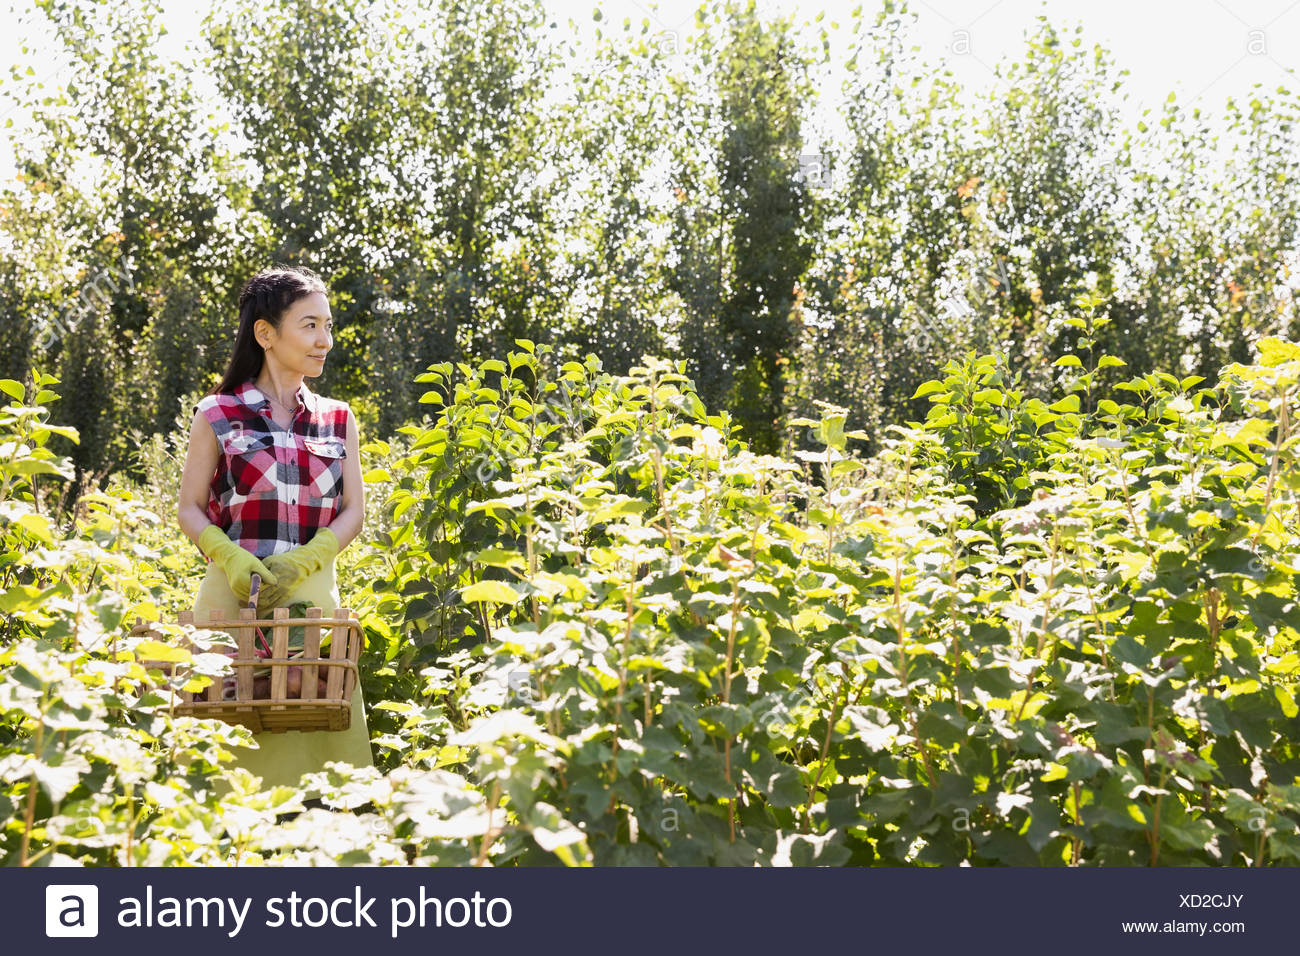 Woman with basket in garden - Stock Image